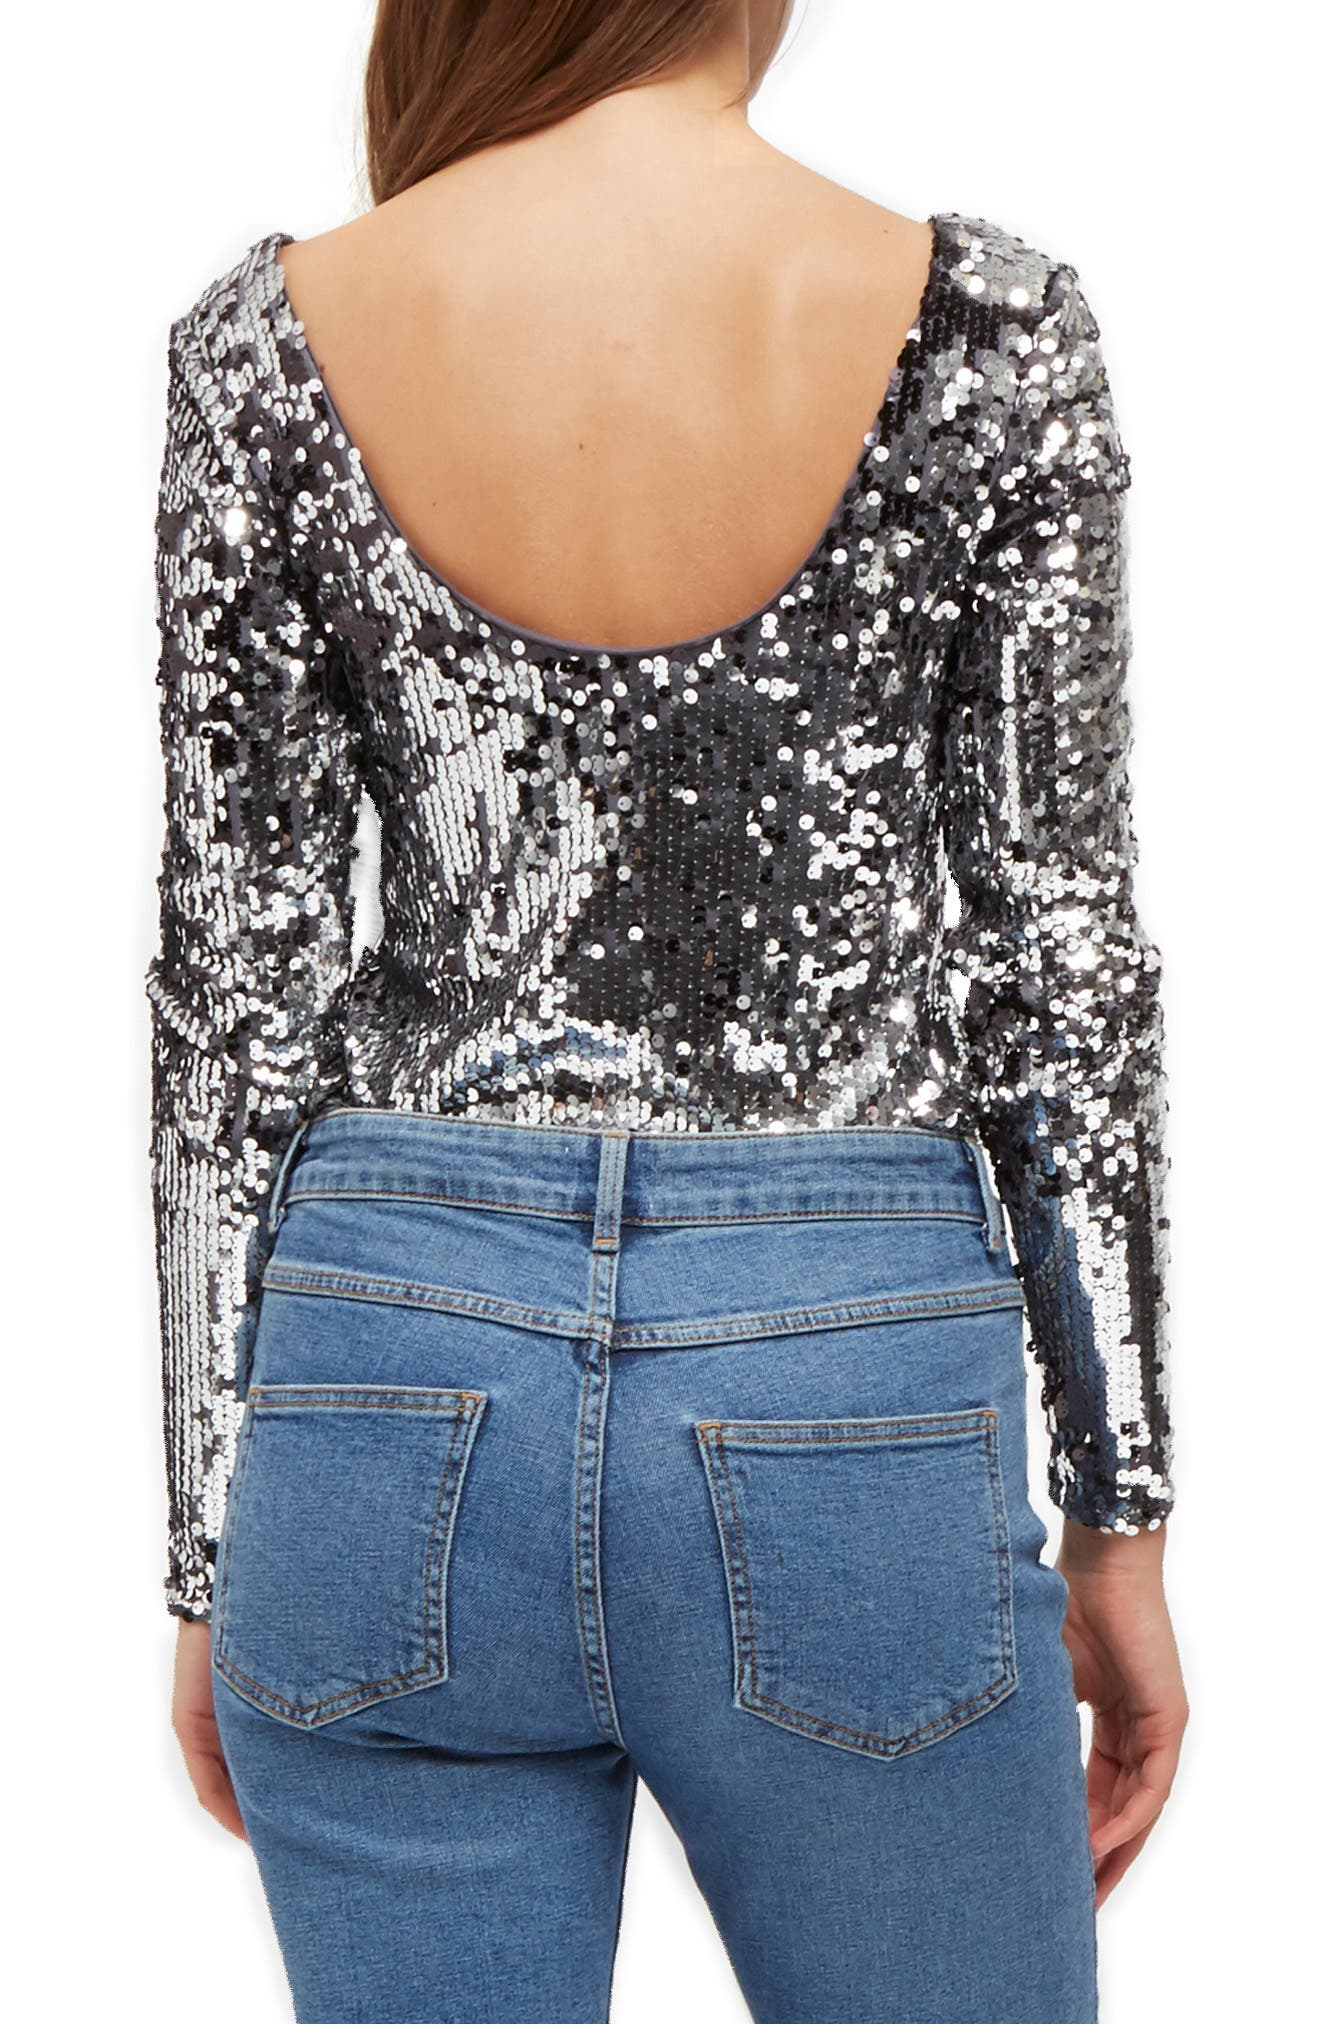 FRENCH CONNECTION,                             Zena Sequin Top,                             Alternate thumbnail 2, color,                             020